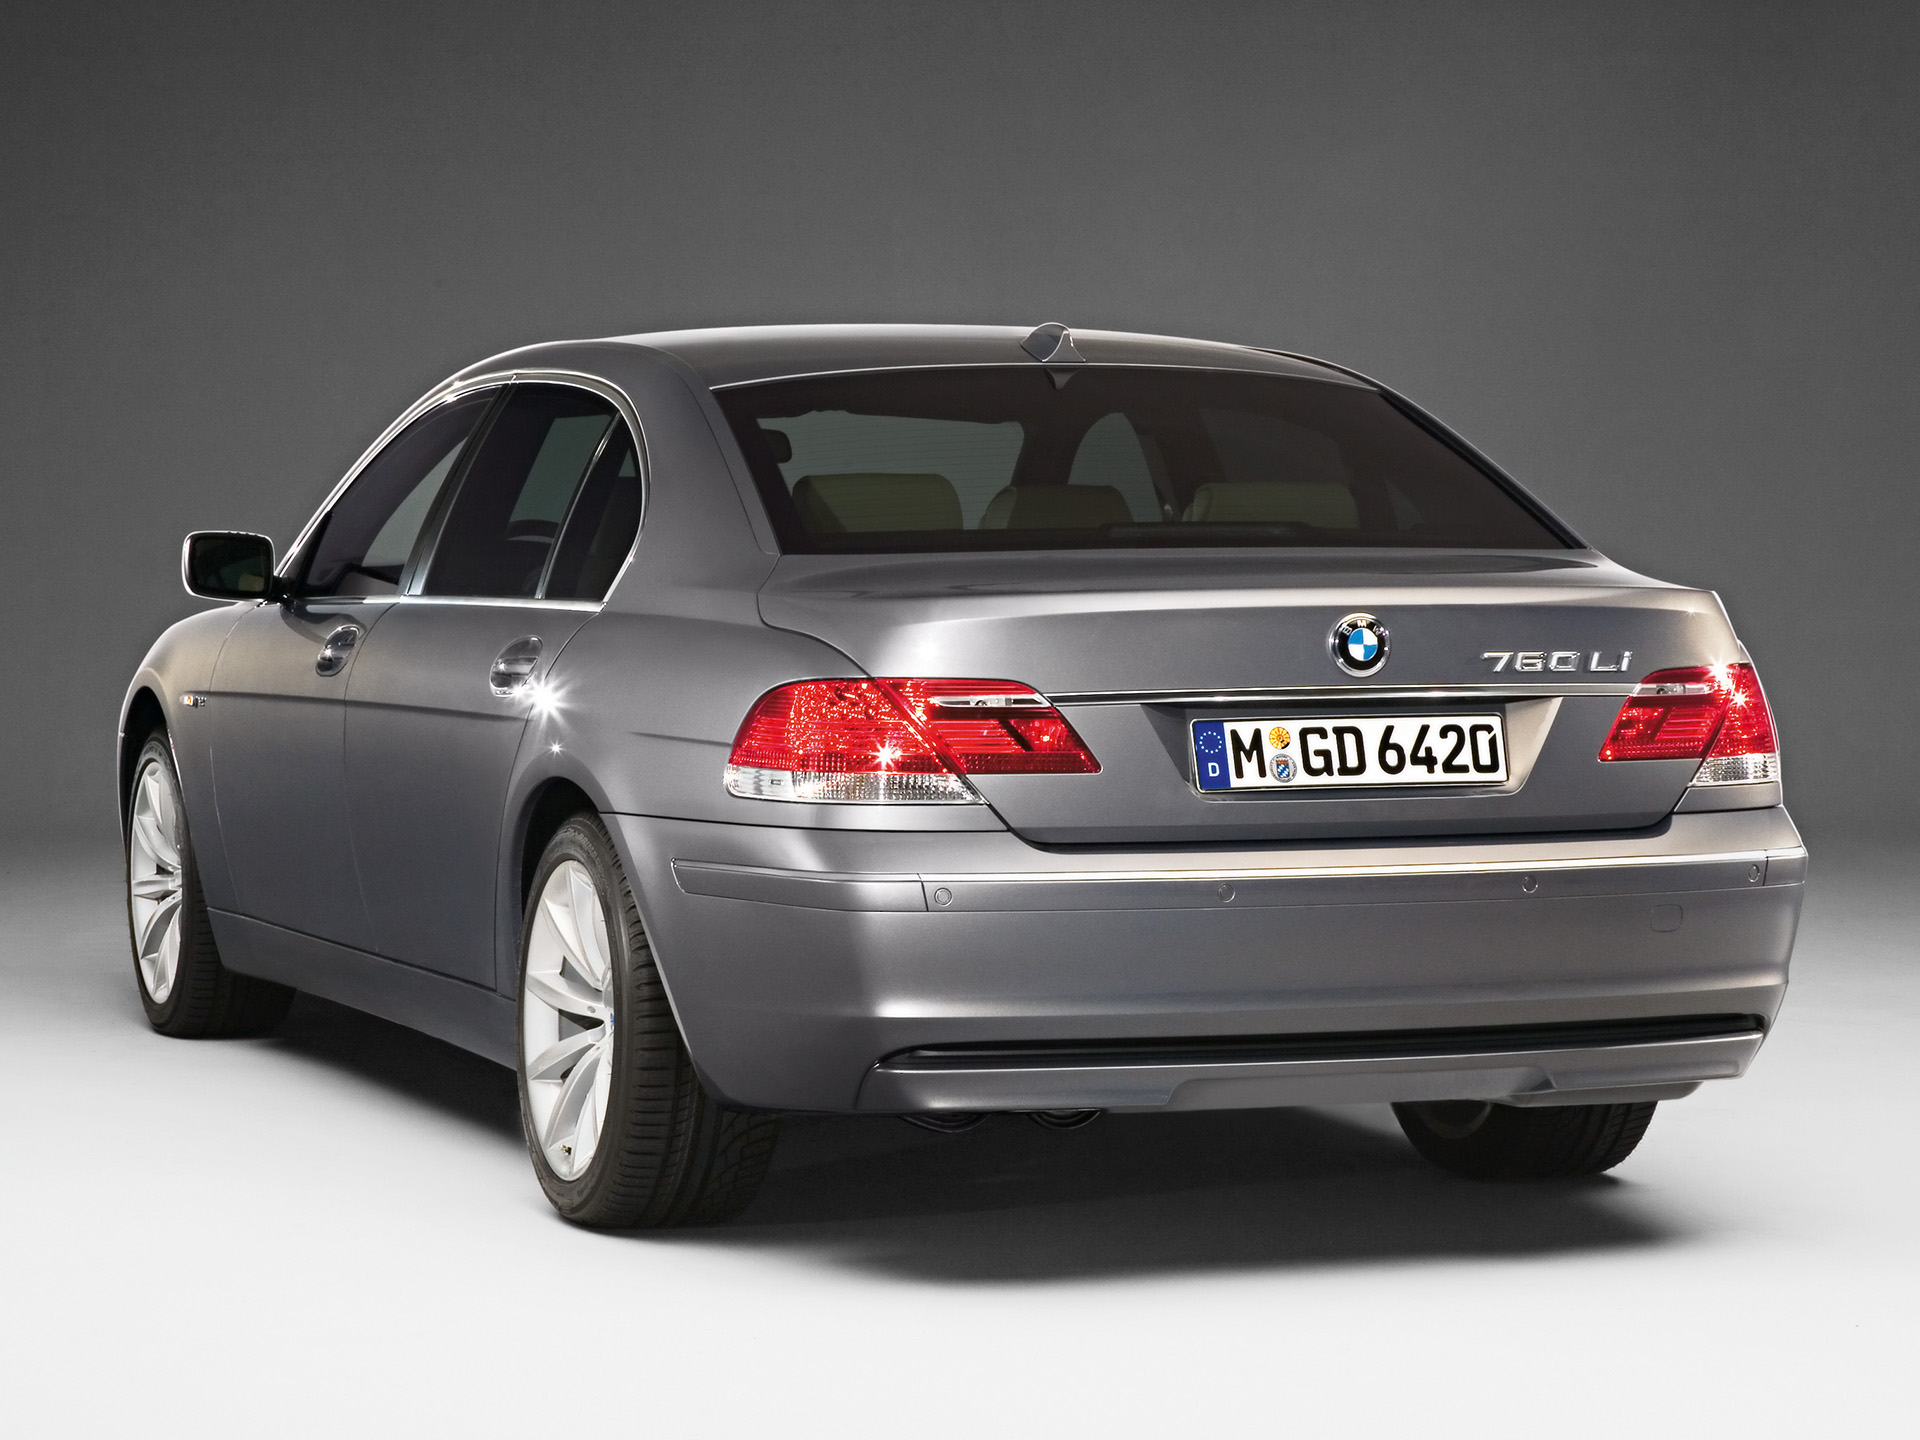 2007 BMW 7 Series - Information and photos - ZombieDrive